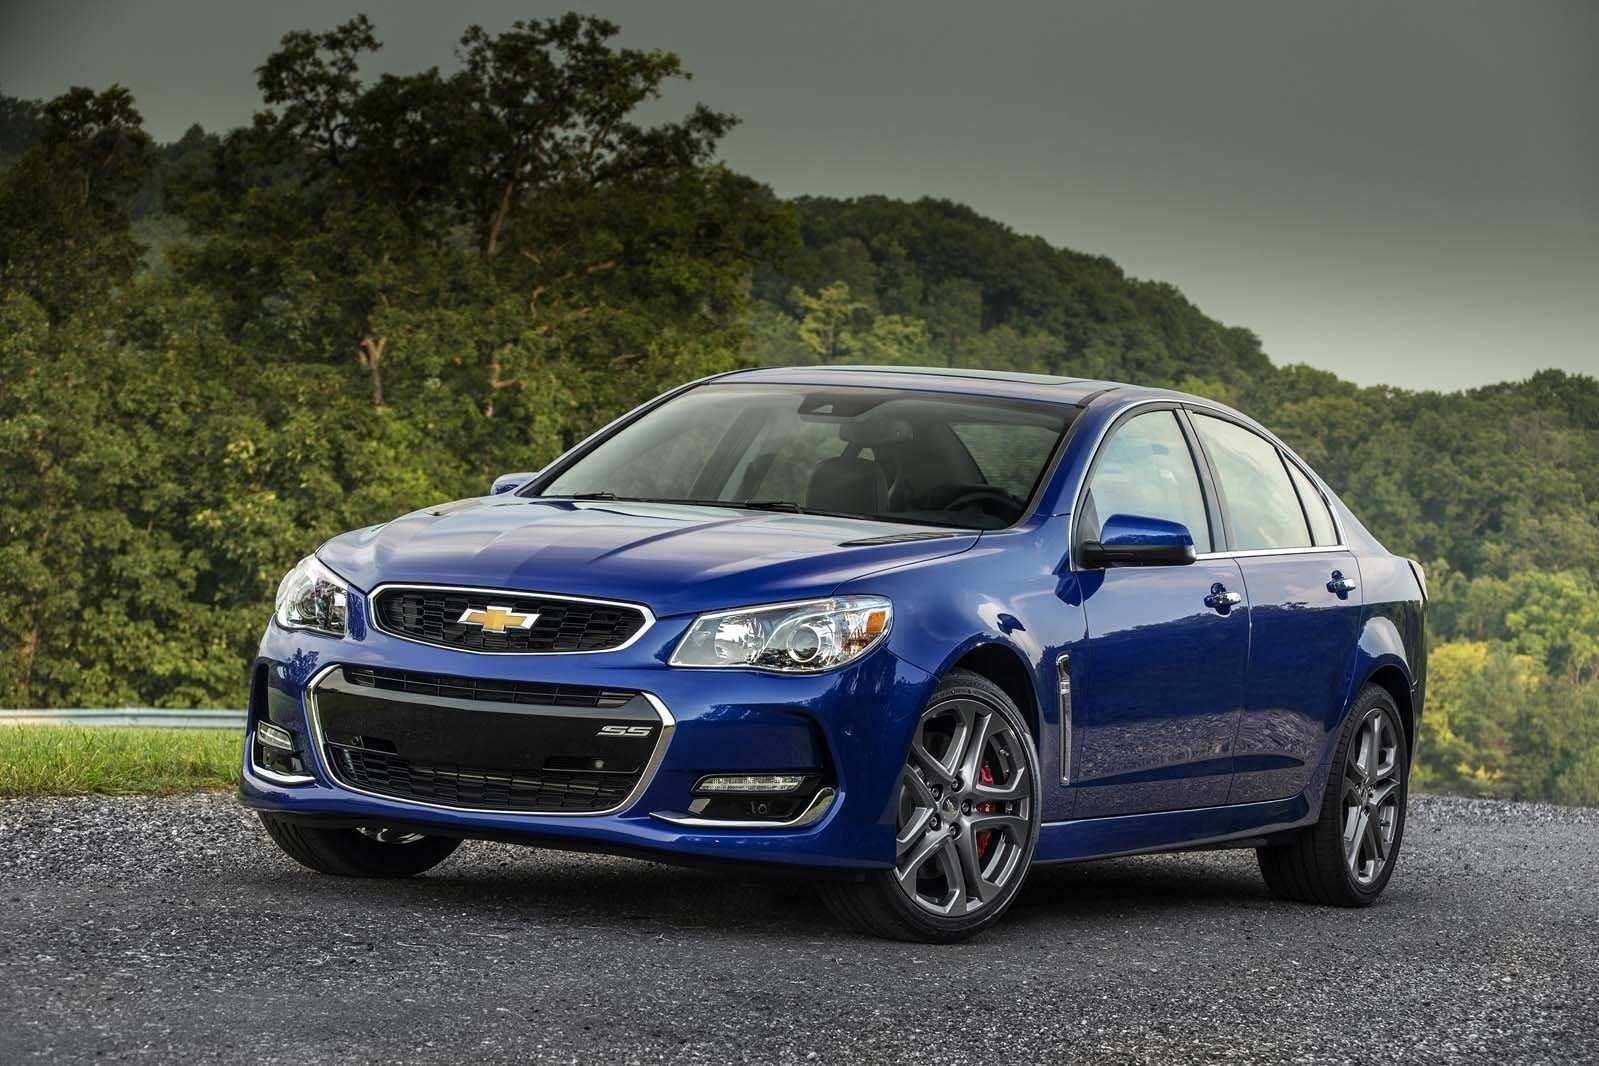 23 All New 2019 Chevrolet Impala Ss Release Date for 2019 Chevrolet Impala Ss